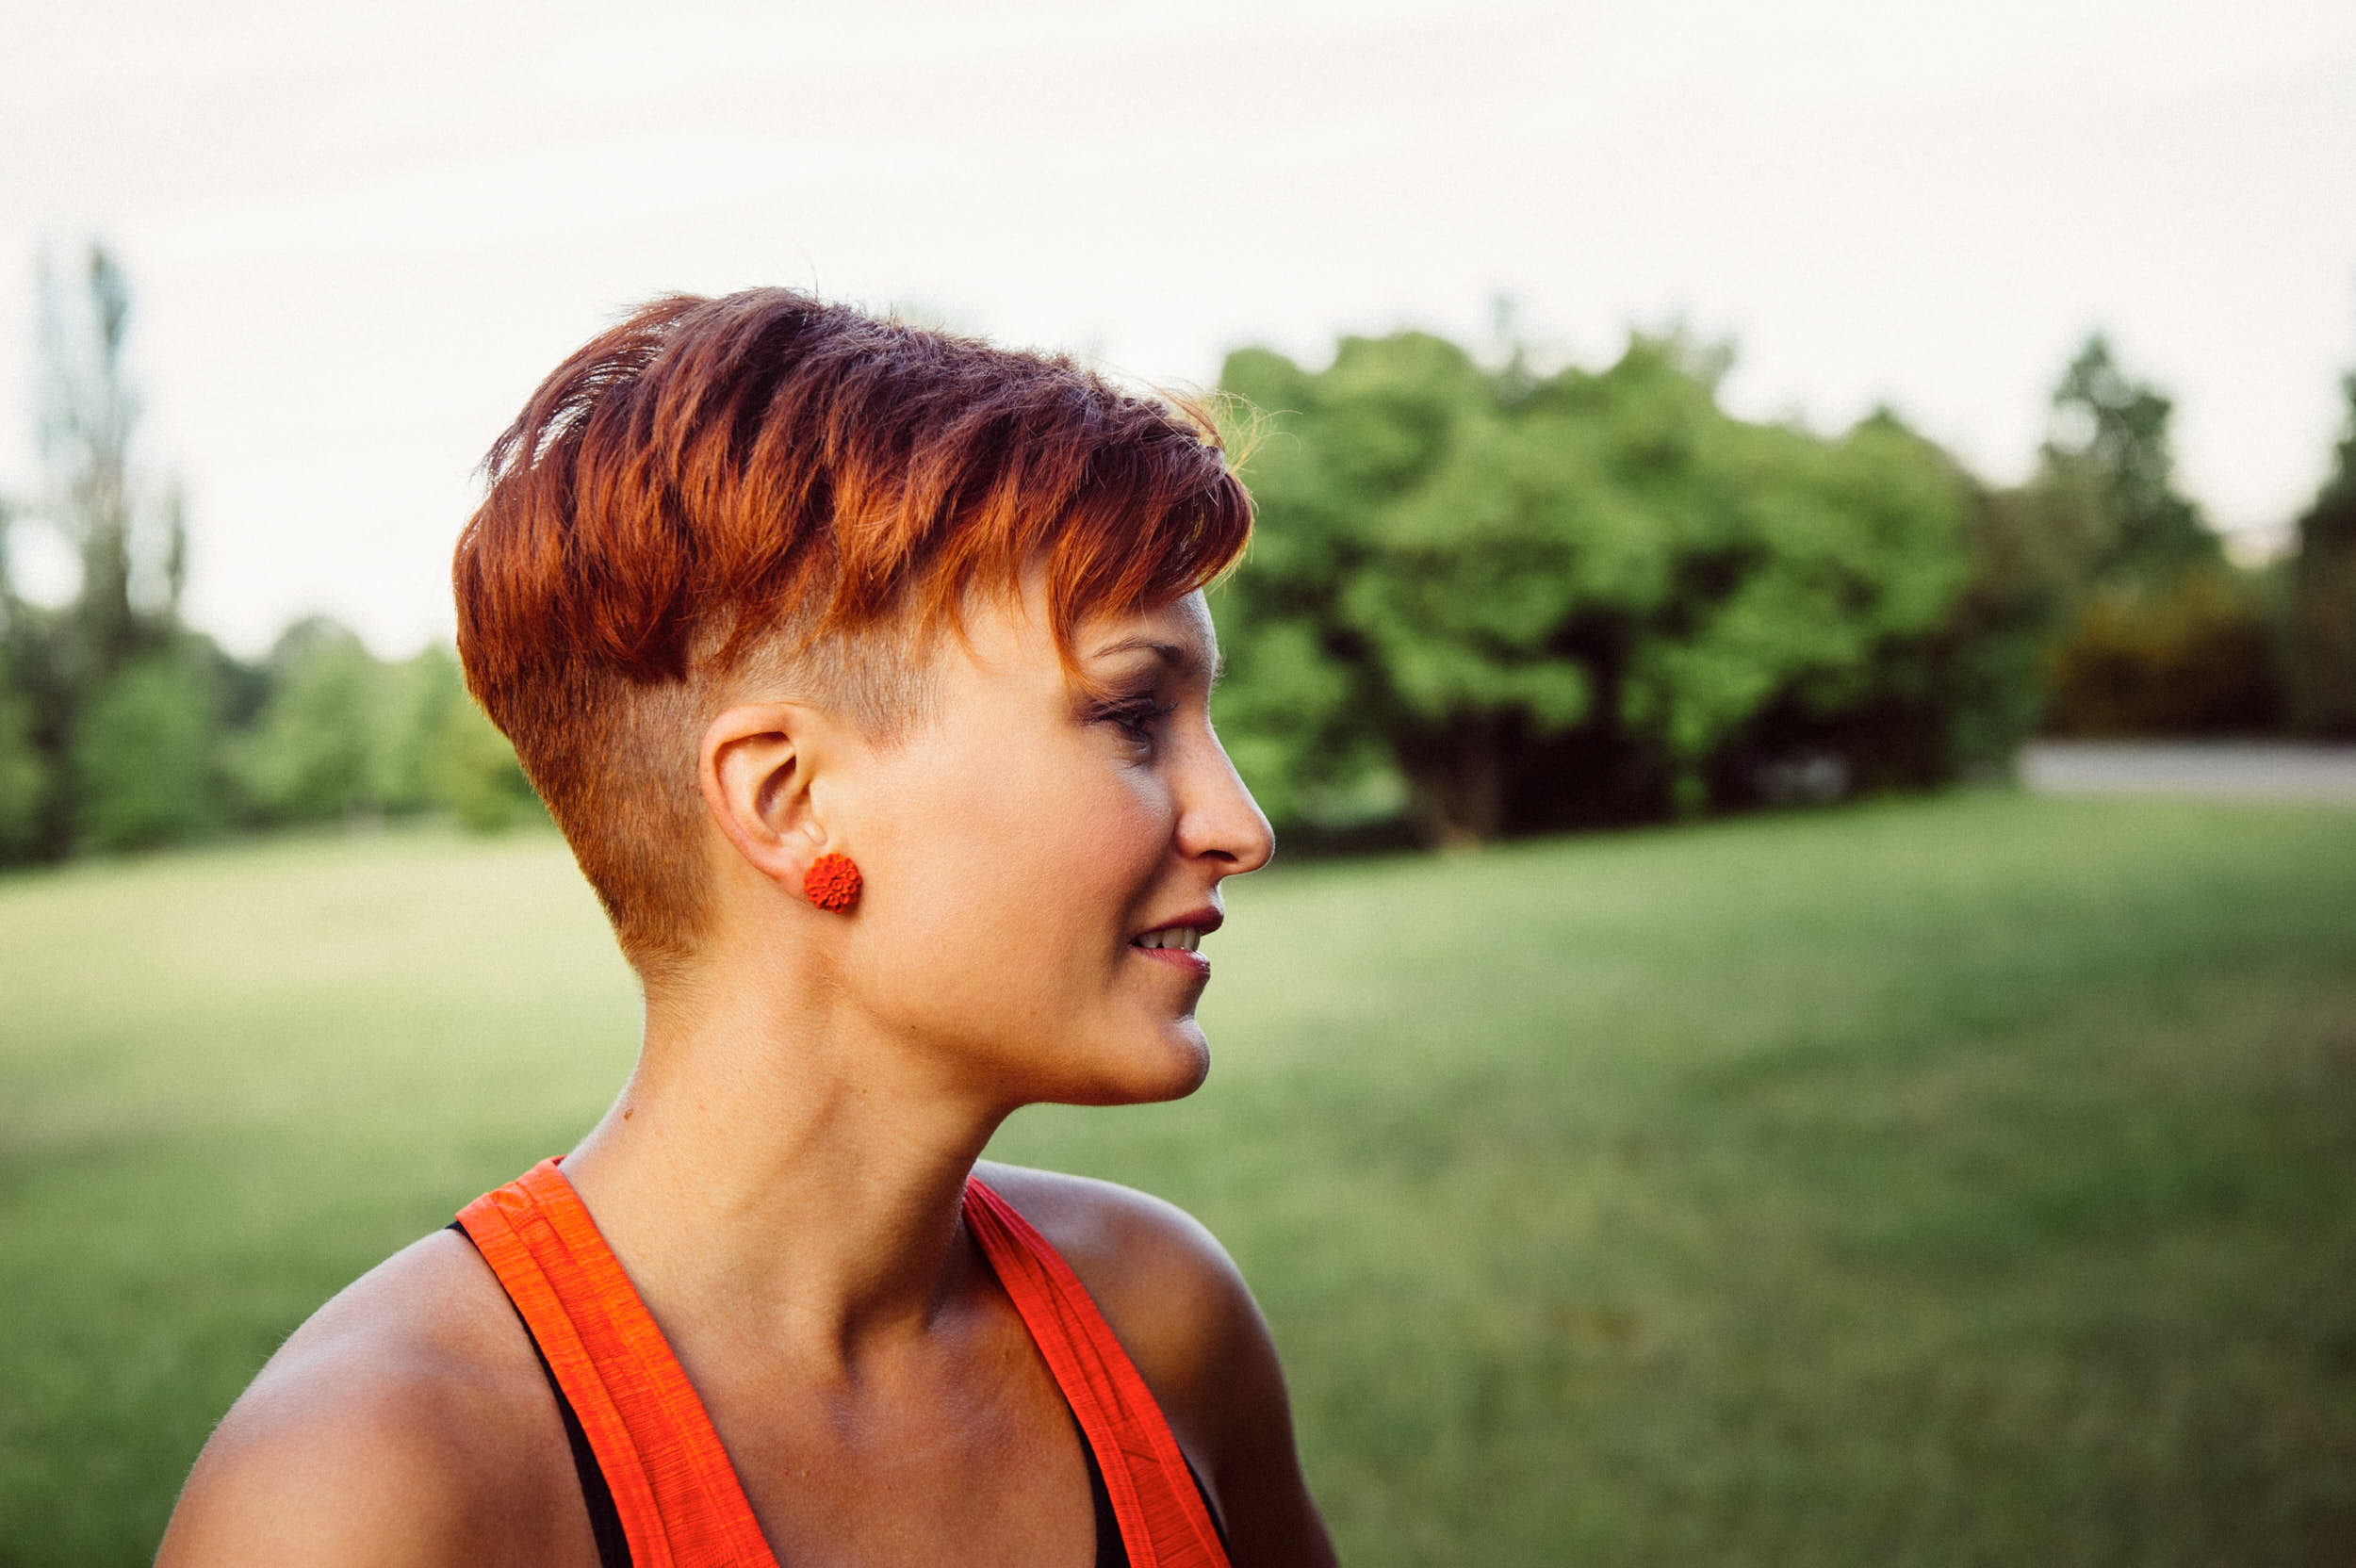 A girl with orange hair and tank top is preparing herself for a run.